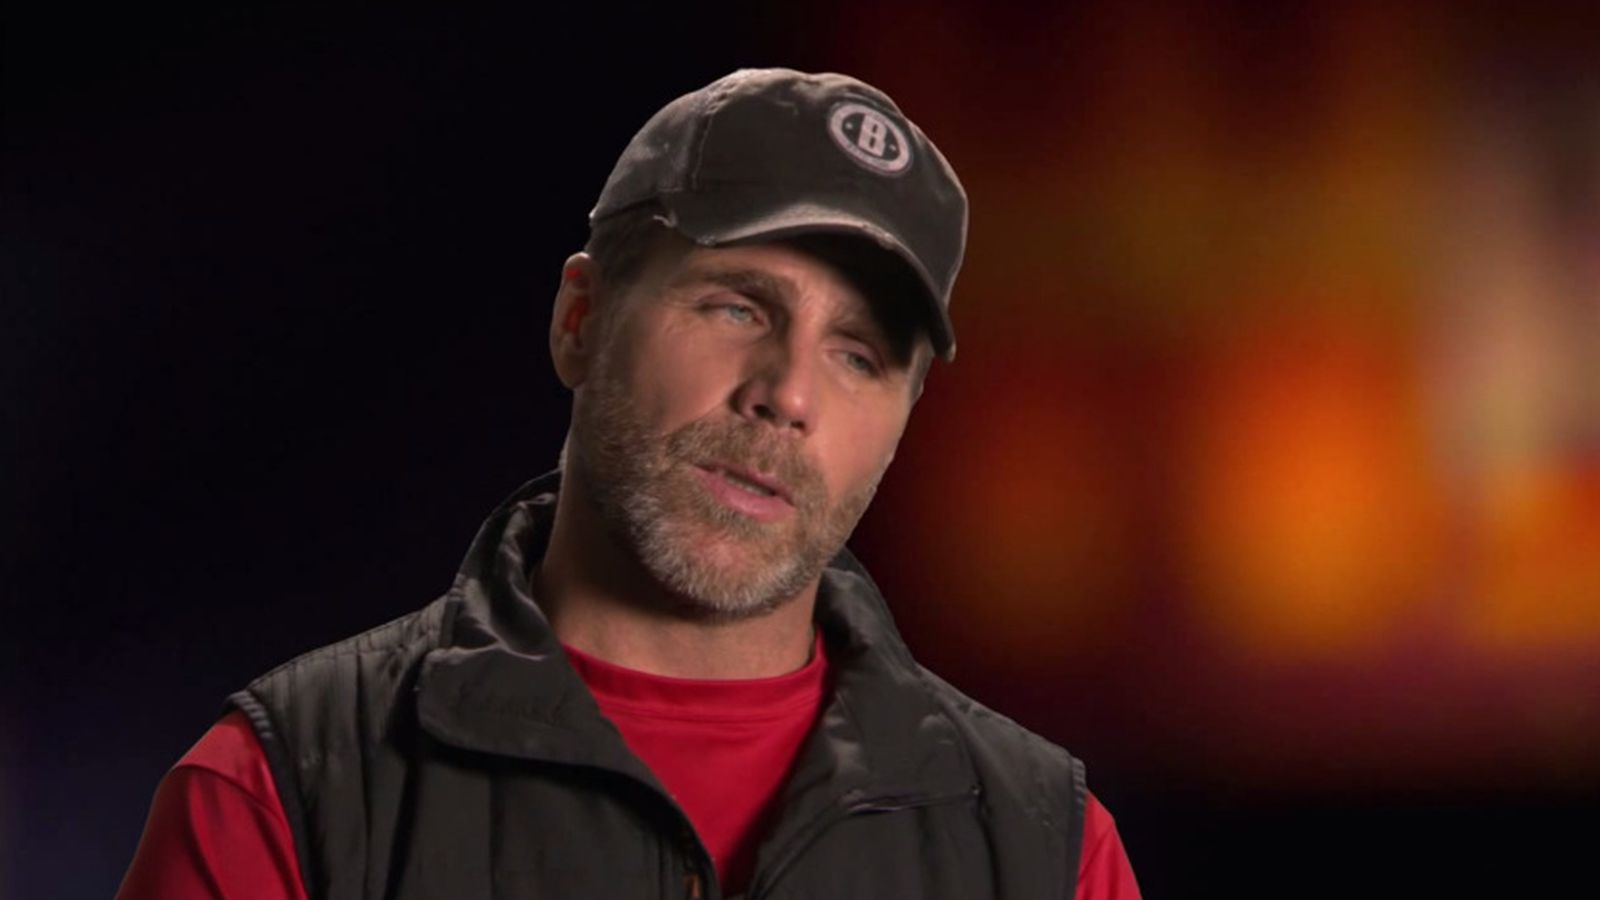 Shawn Michaels Reveals His True Thoughts About John Cena